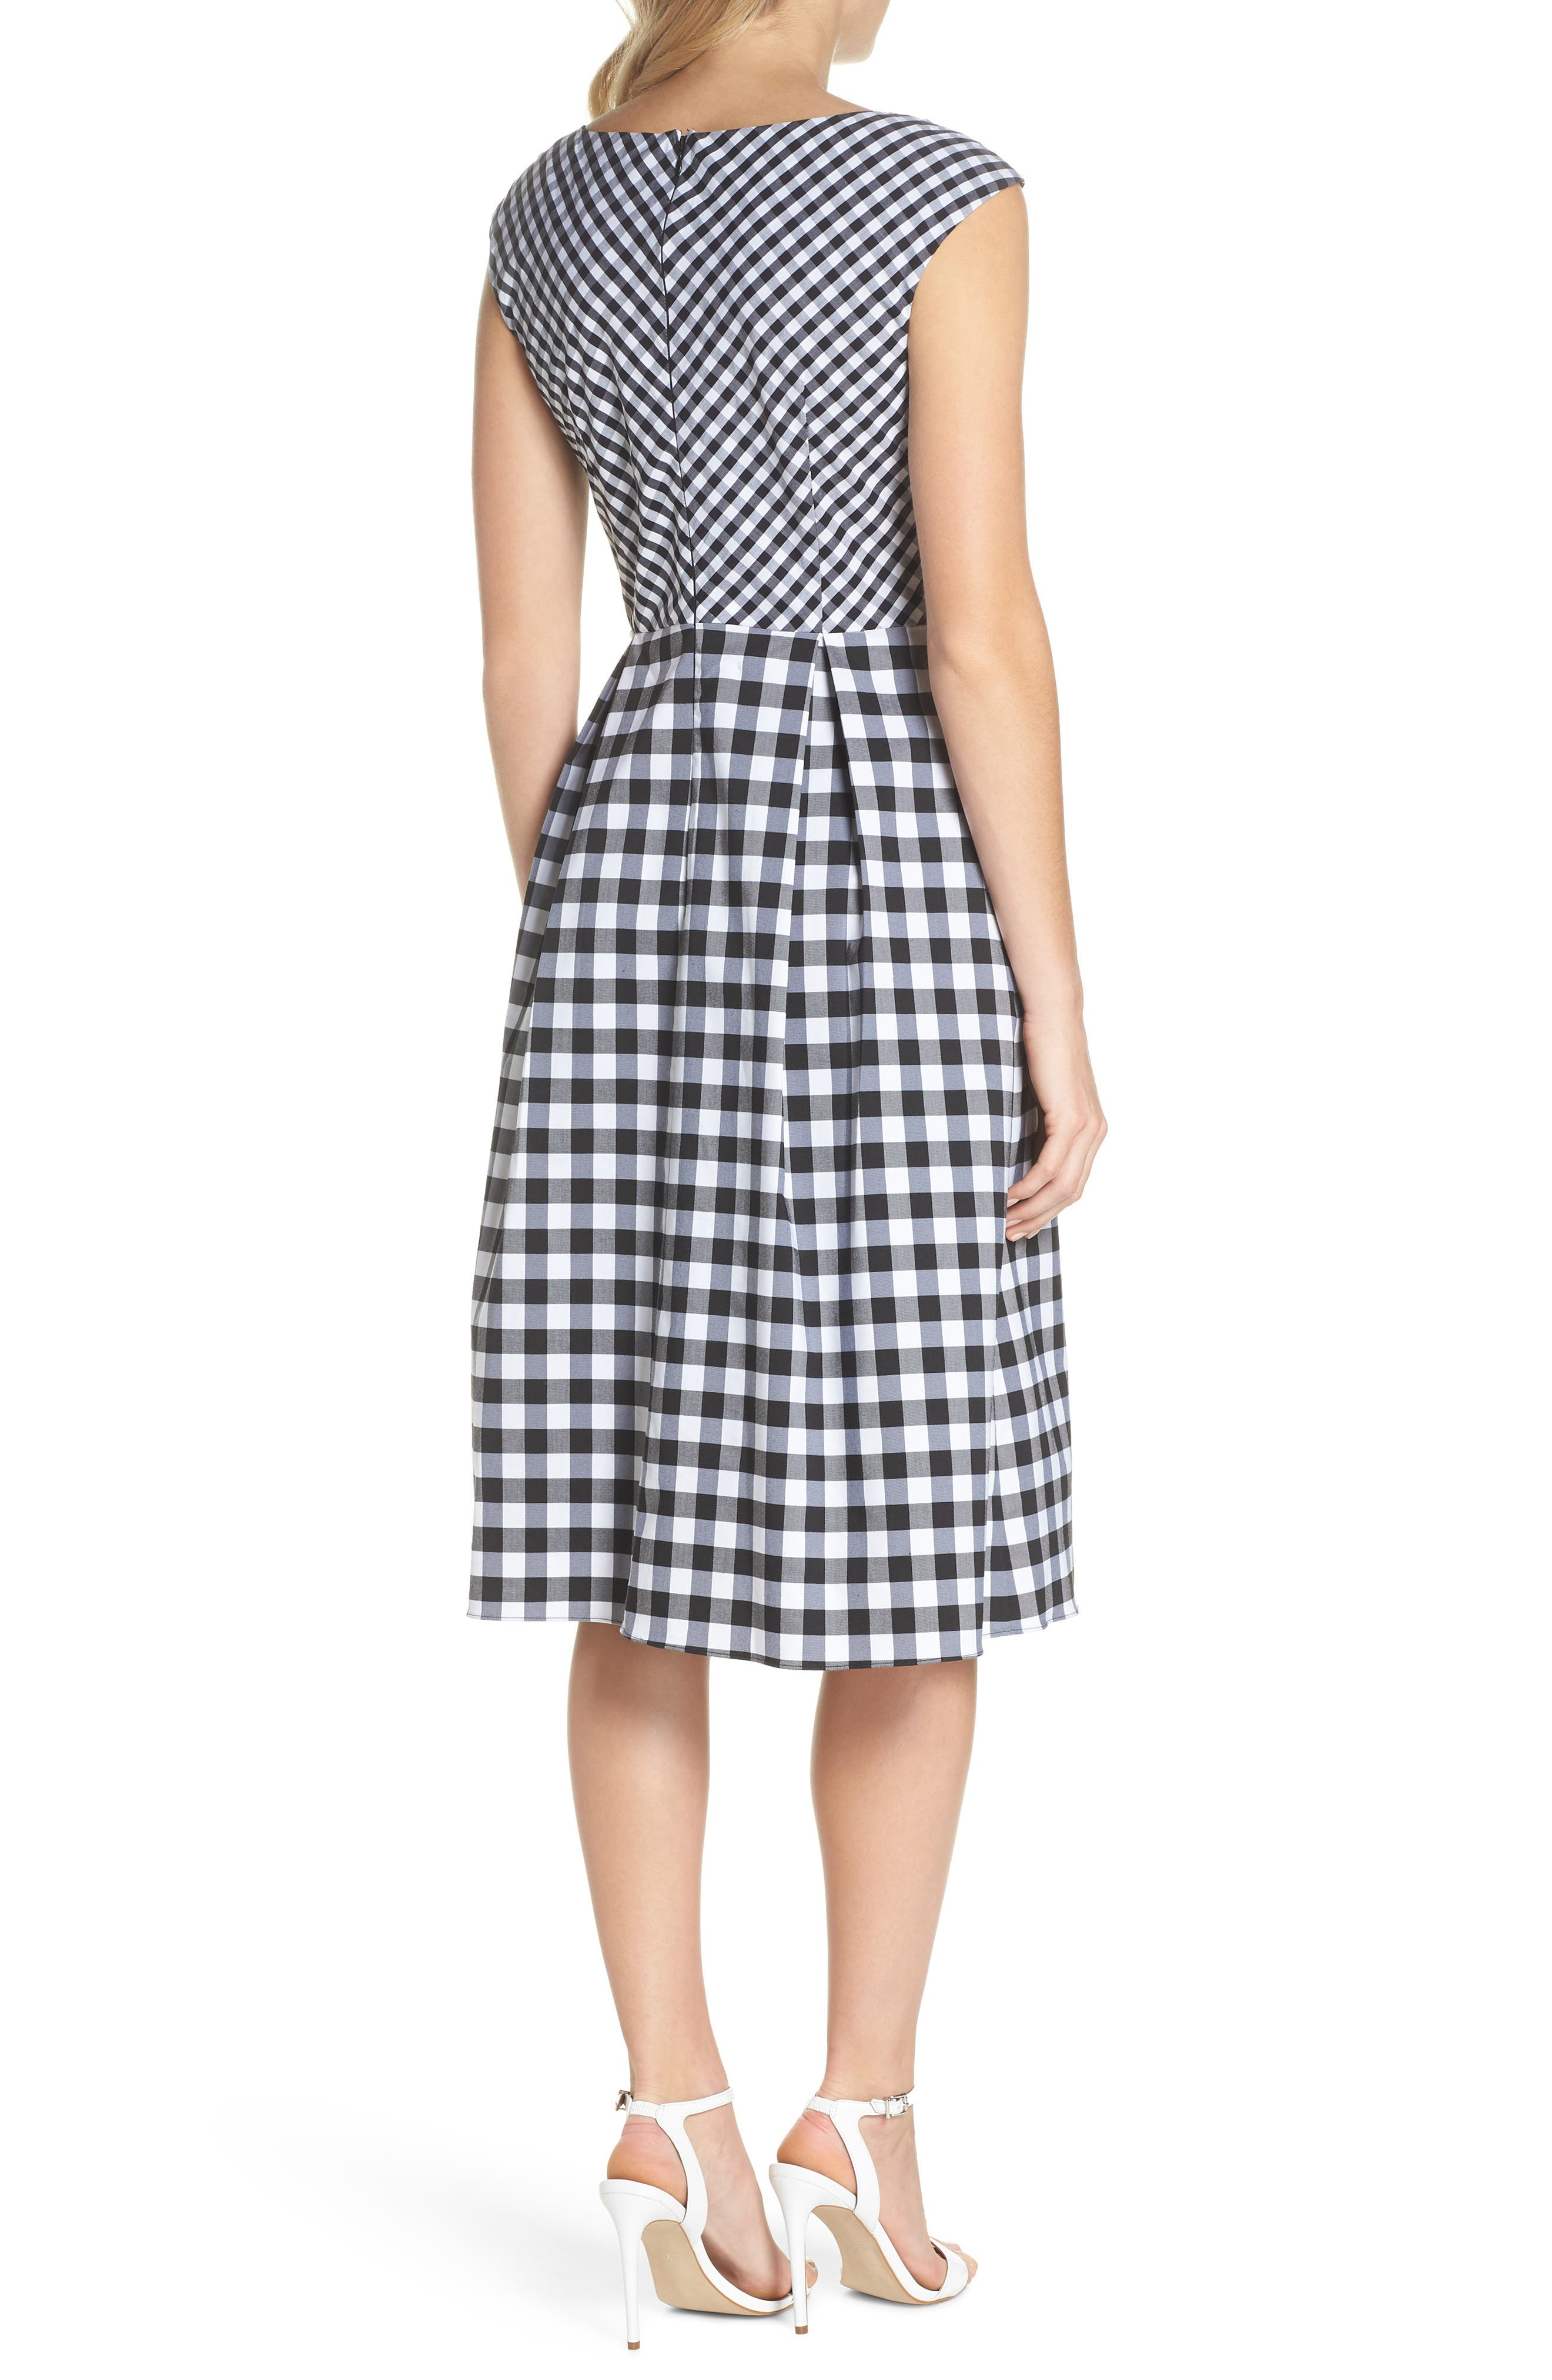 ADRIANNA PAPELL,                             Gingham Tie Front Midi Dress,                             Alternate thumbnail 2, color,                             002